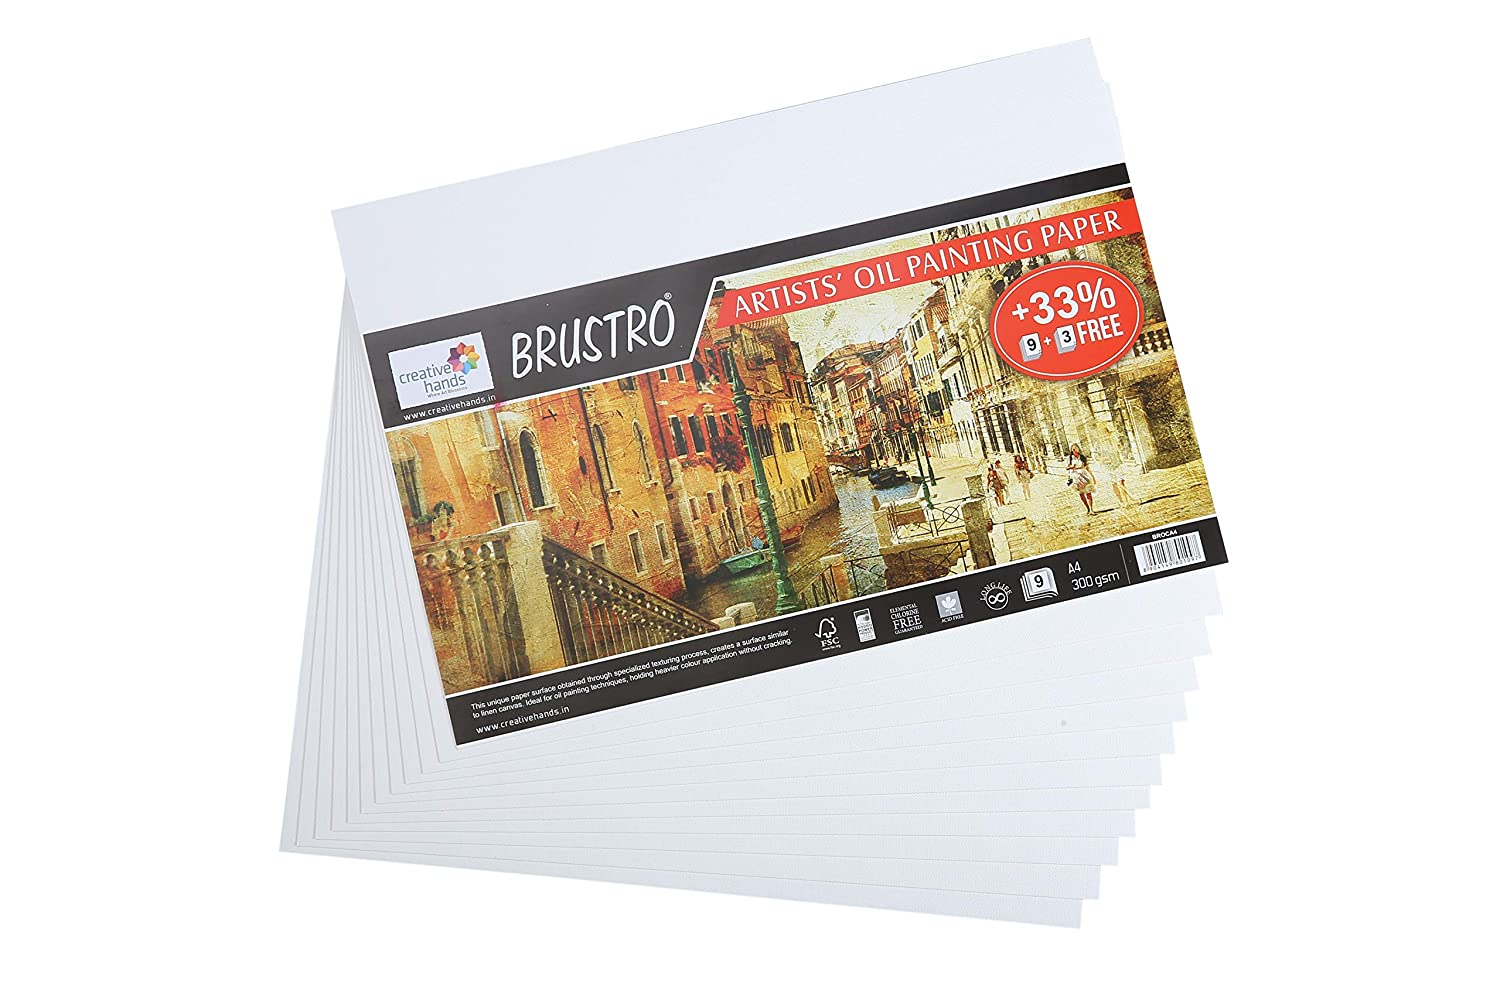 Brustro Artists Oil Painting Paper 300 GSM A4